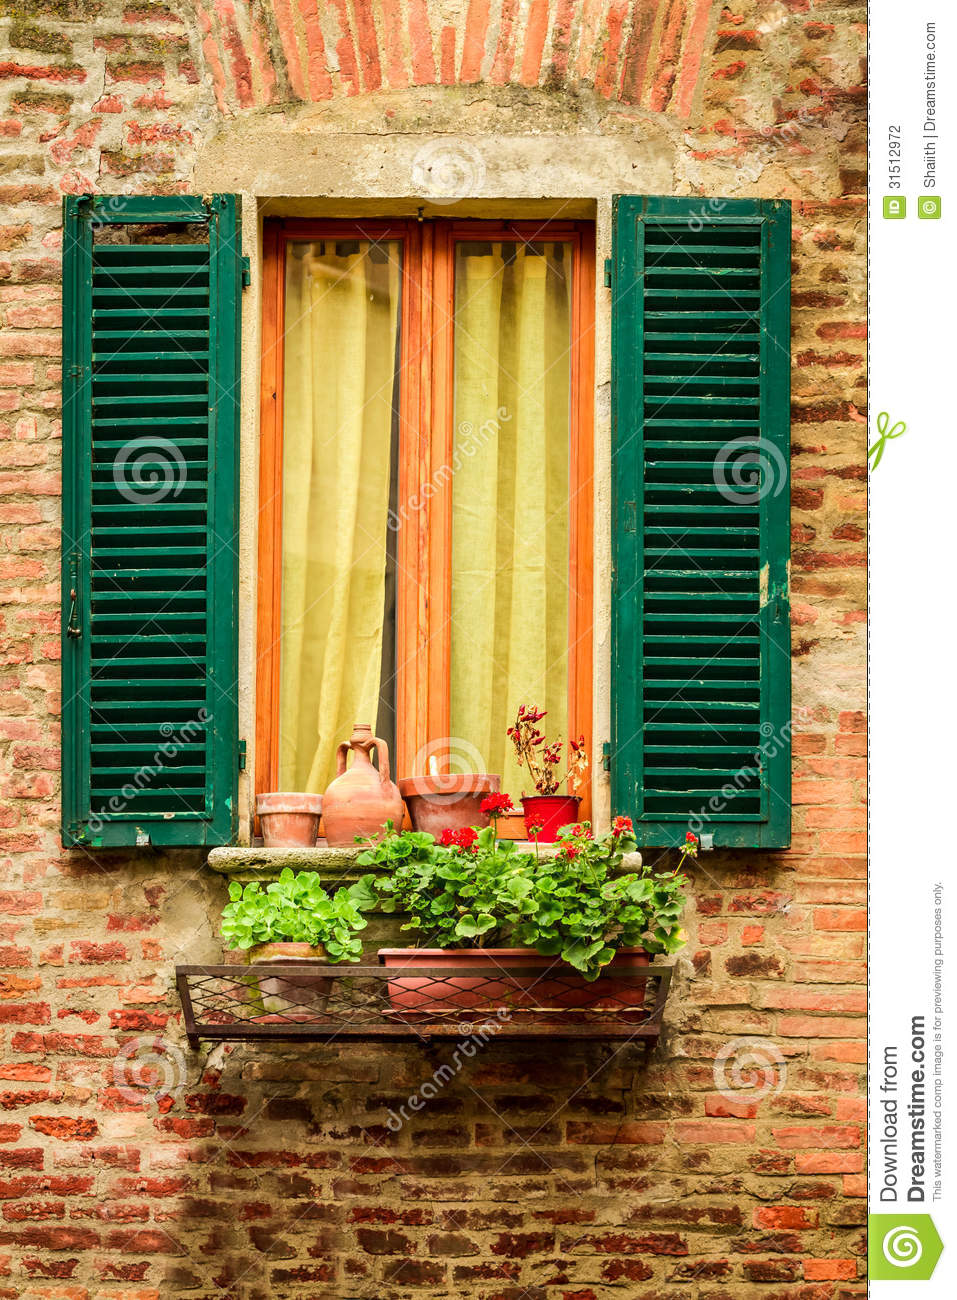 Window In An Old House Decorated With Flower Pots And